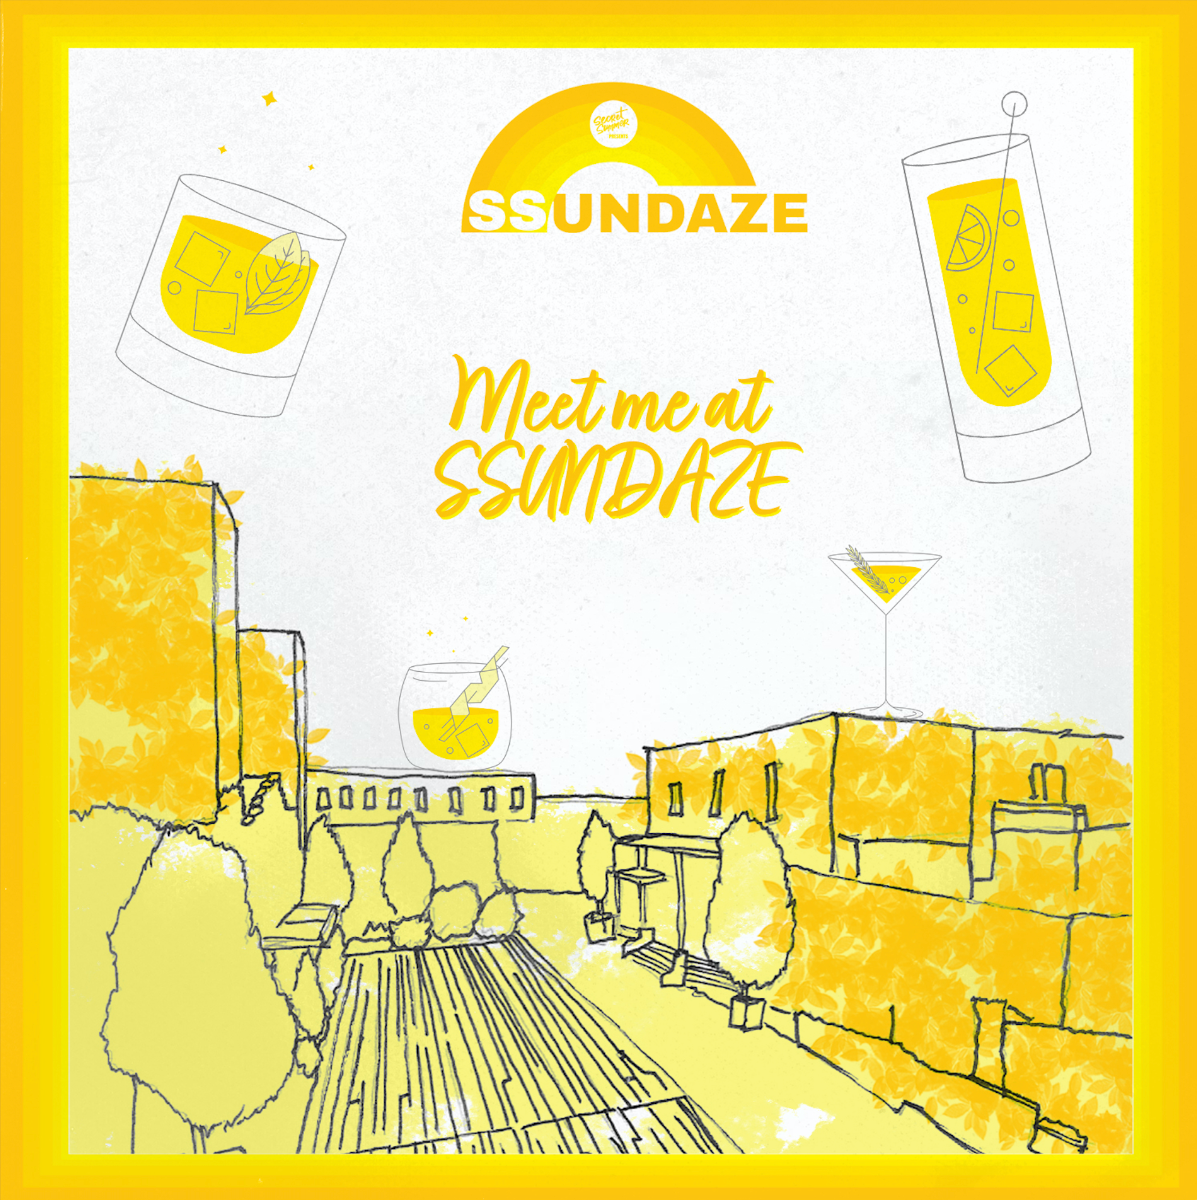 Secret Summer Presents: SSUNDAZE